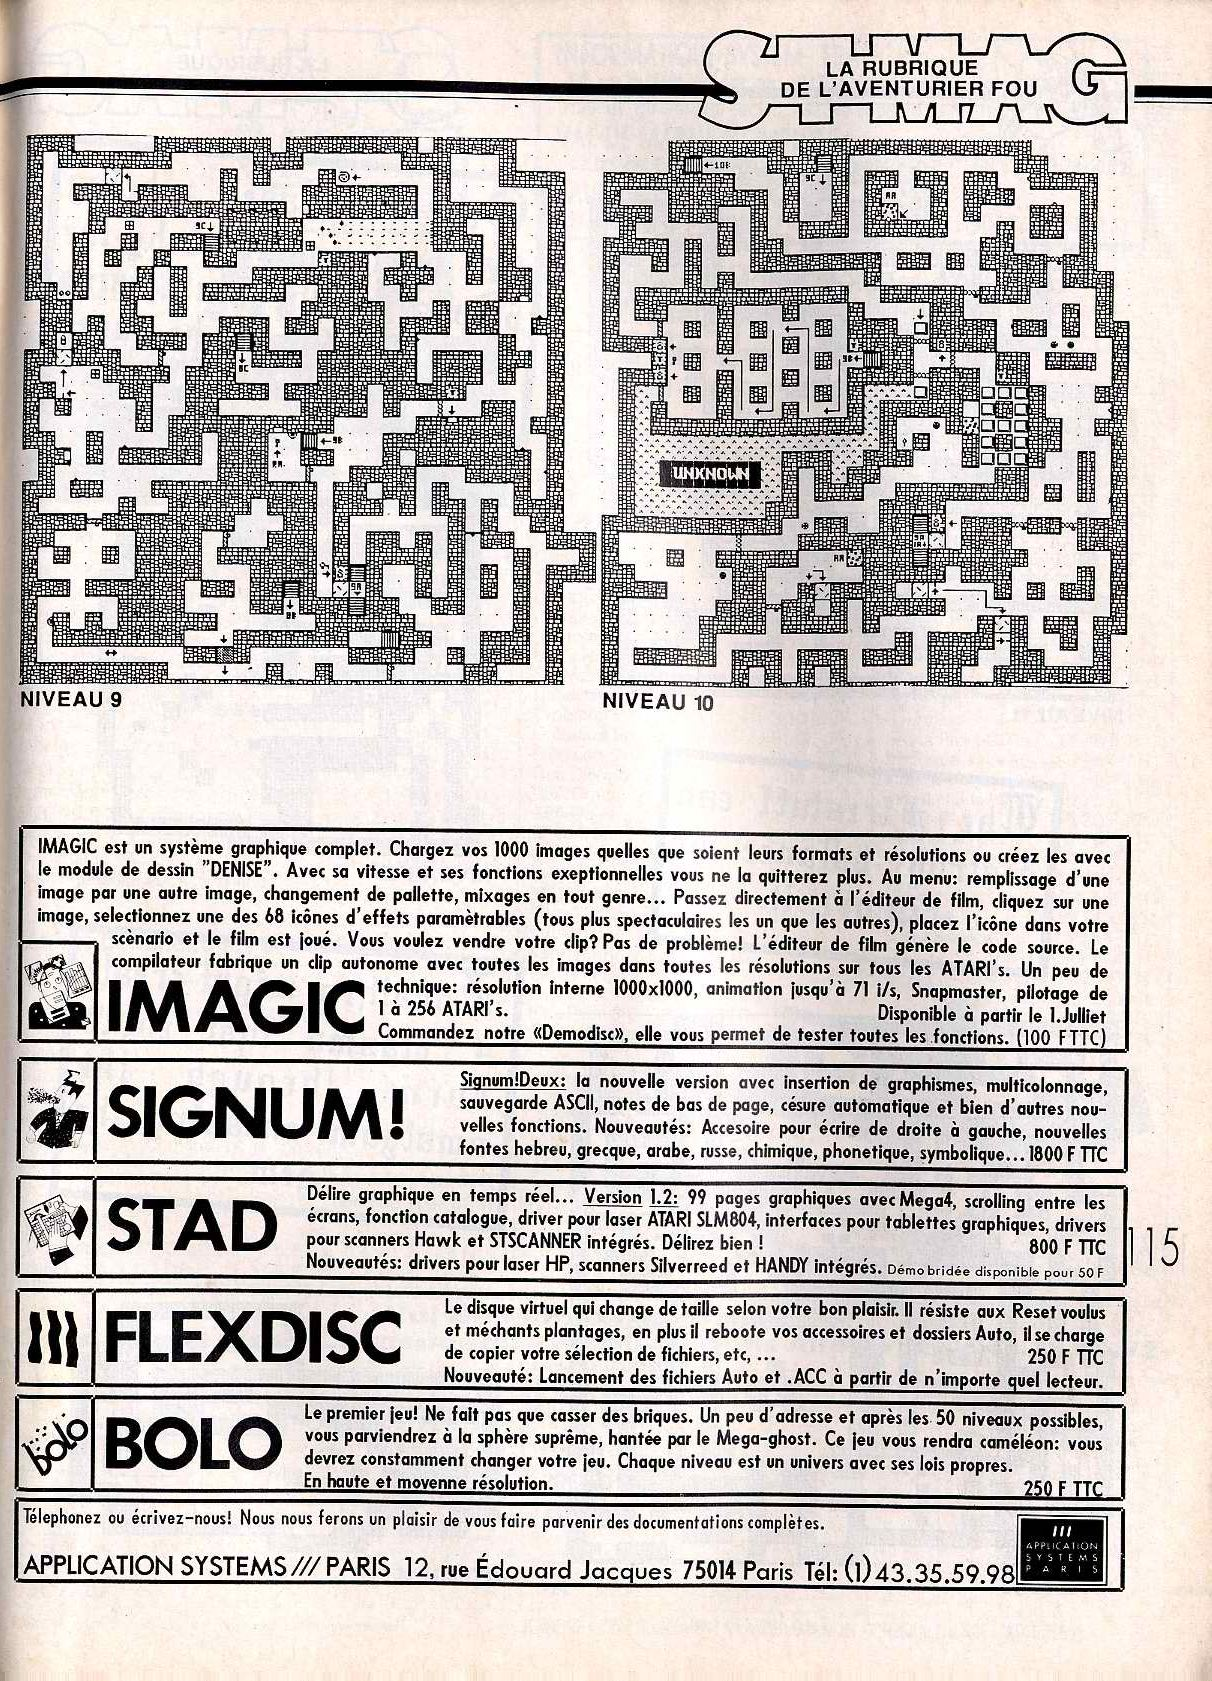 Dungeon Master for Atari ST Guide published in French magazine 'ST Magazine', Issue #20 June 1988, Page 115